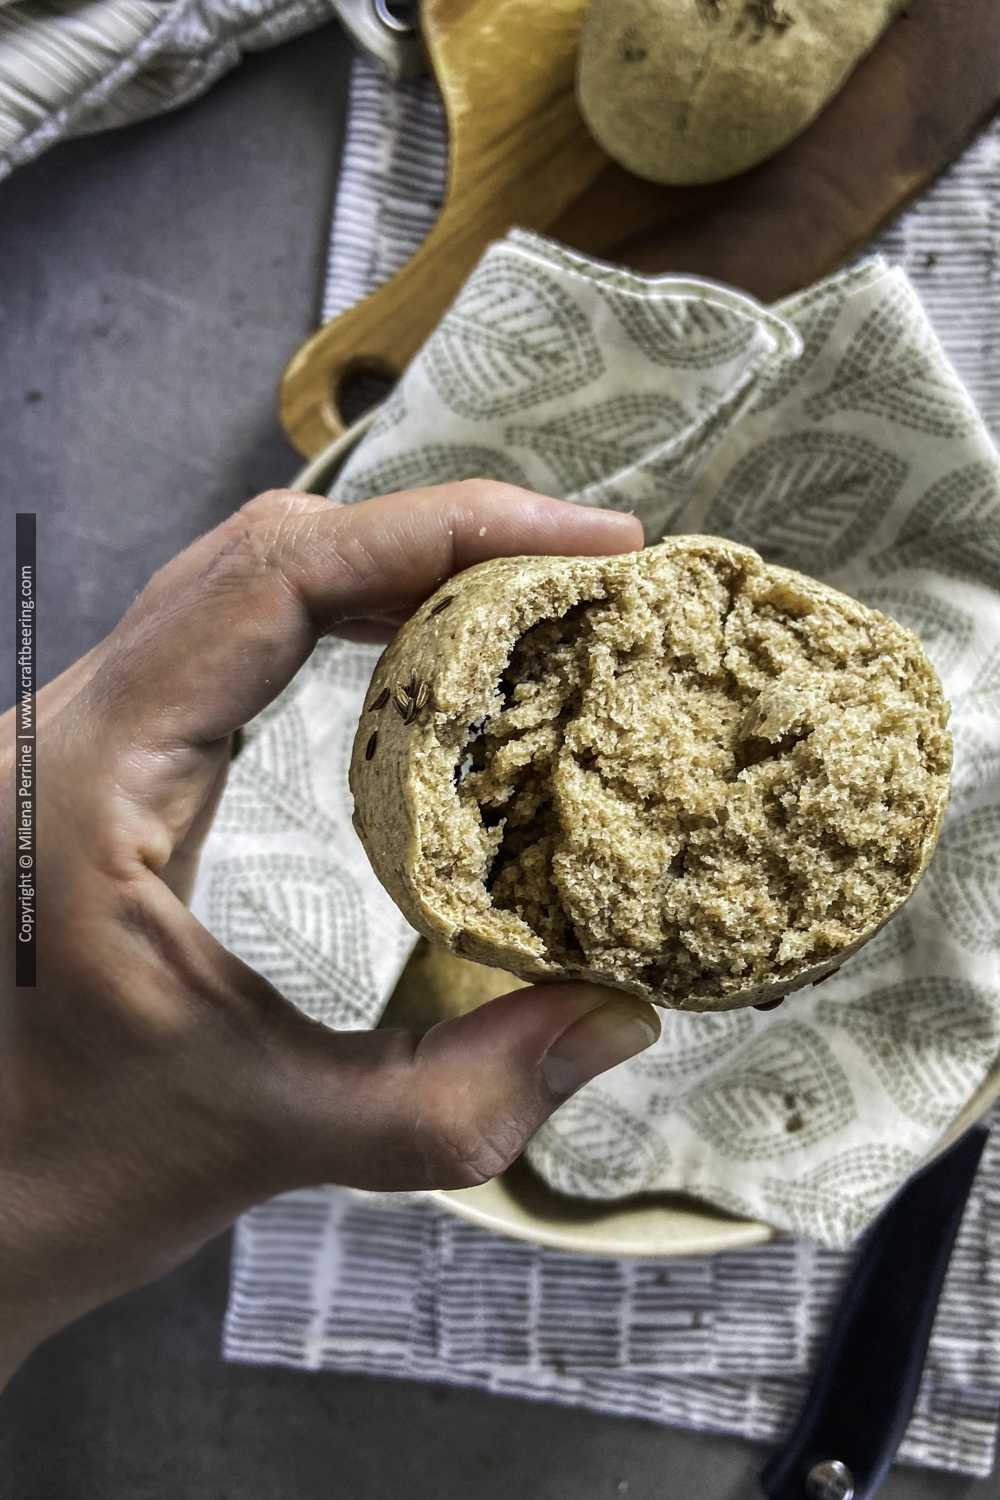 Beer bread roll texture when made with rye flour - denser than if it was baked with all-purpose wheat.